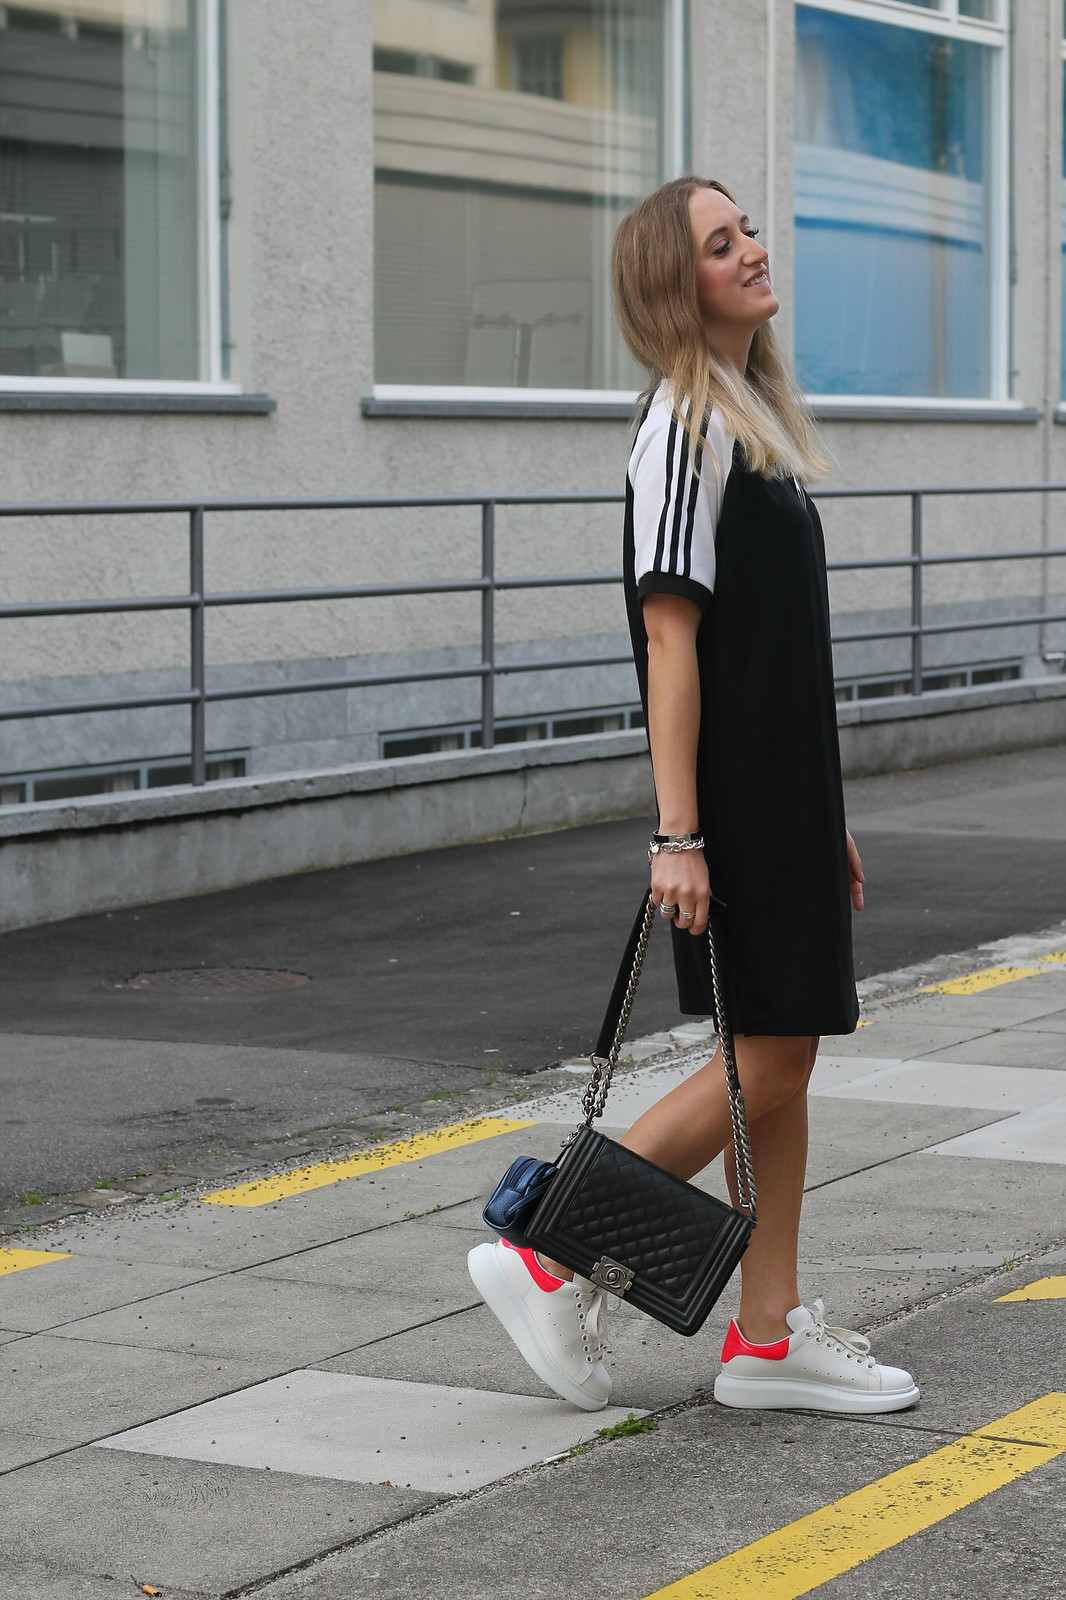 adidas-dress-and-alexander-mc-queen-sneaker-wiebkembg